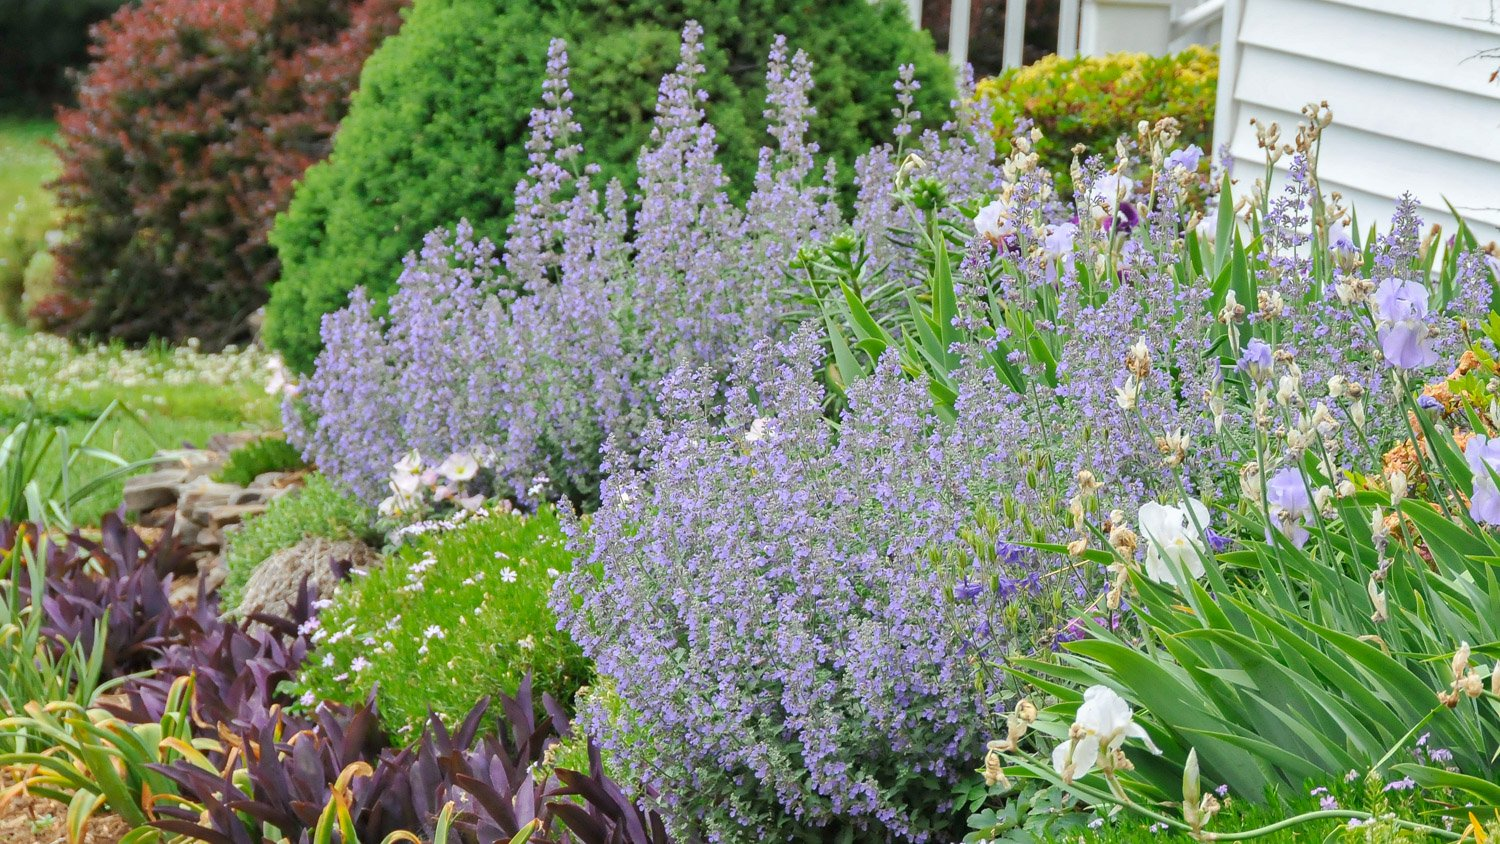 Catmint 'Walkers Low' blooming amid Iris